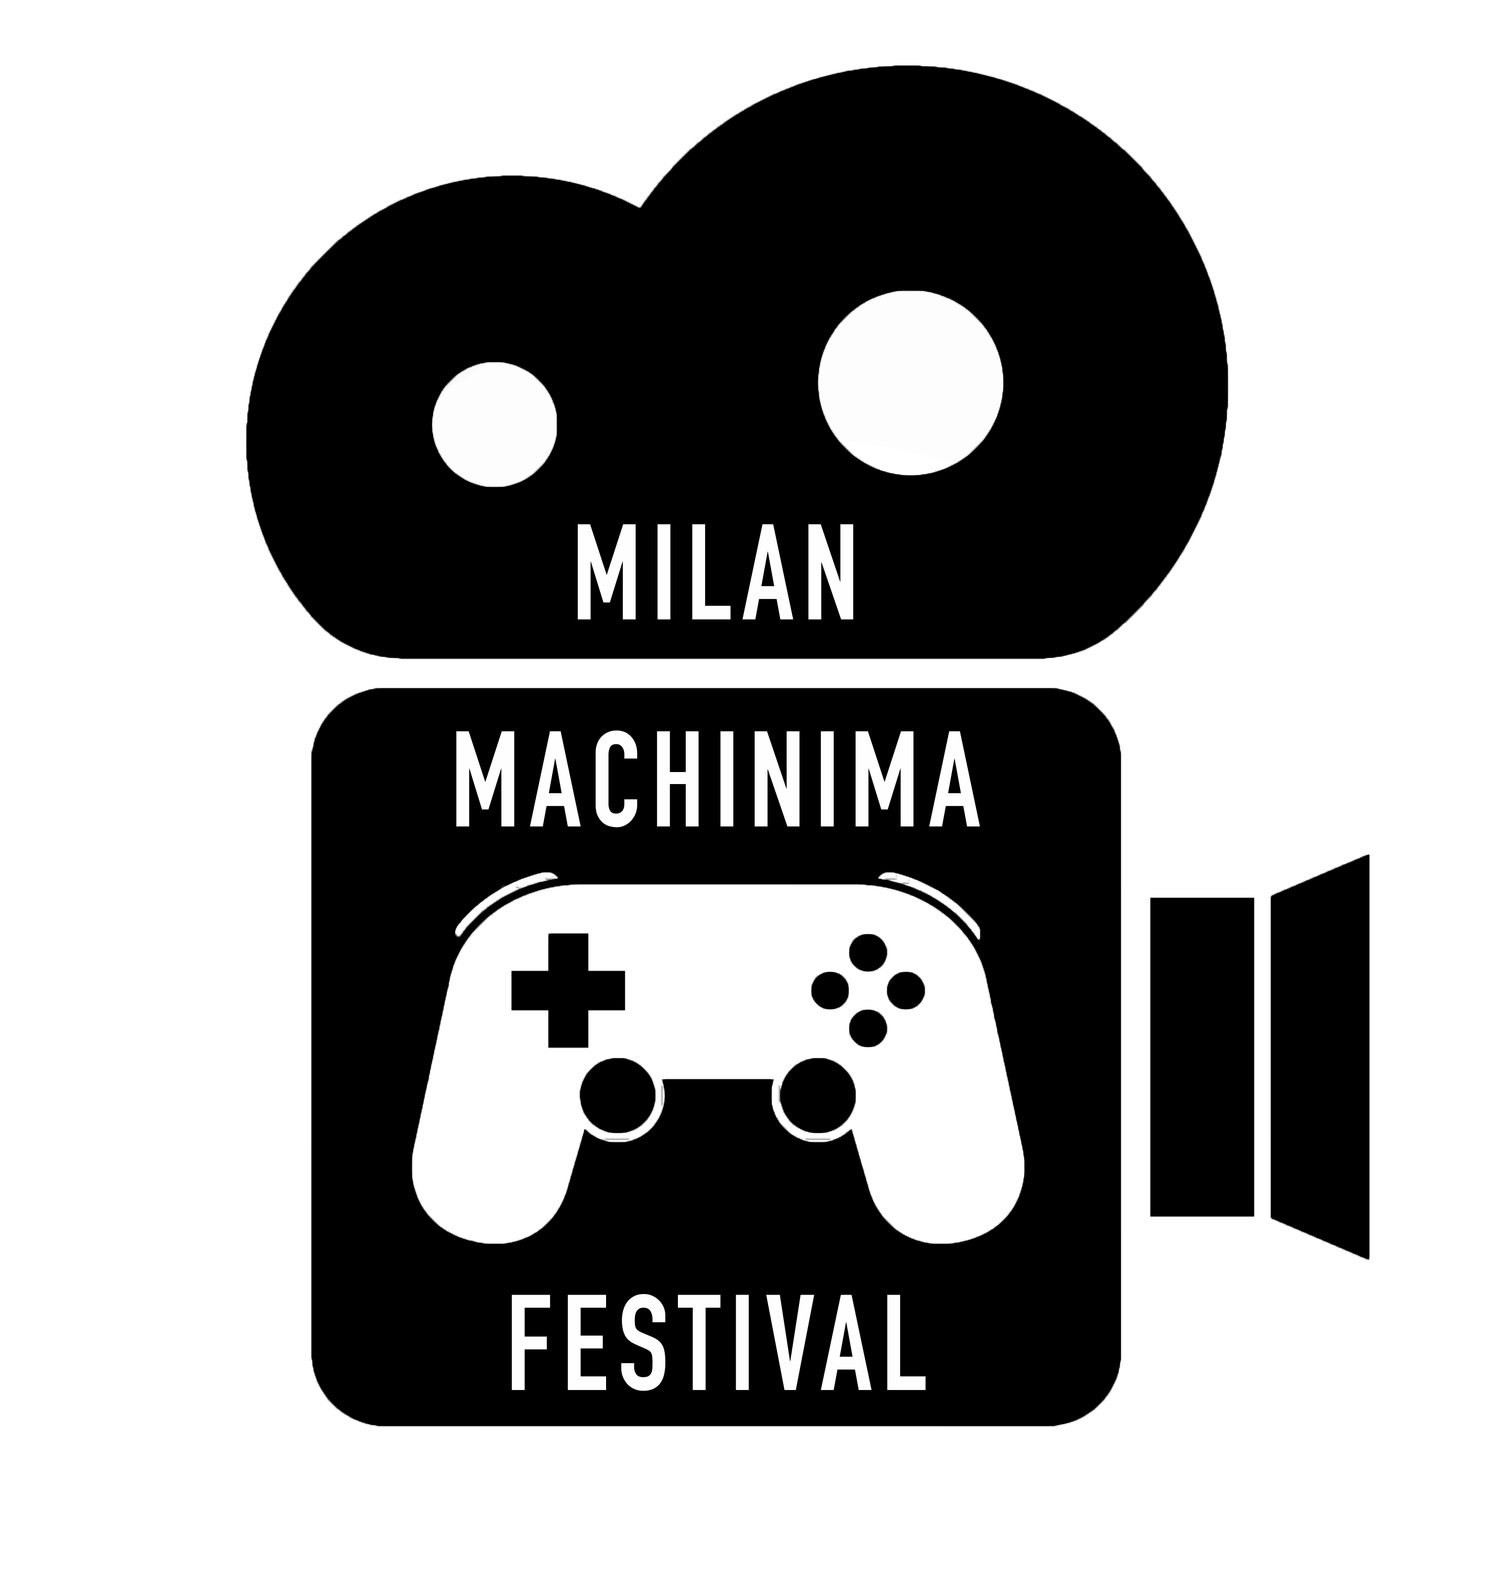 MILAN MACHINIMA FESTIVAL